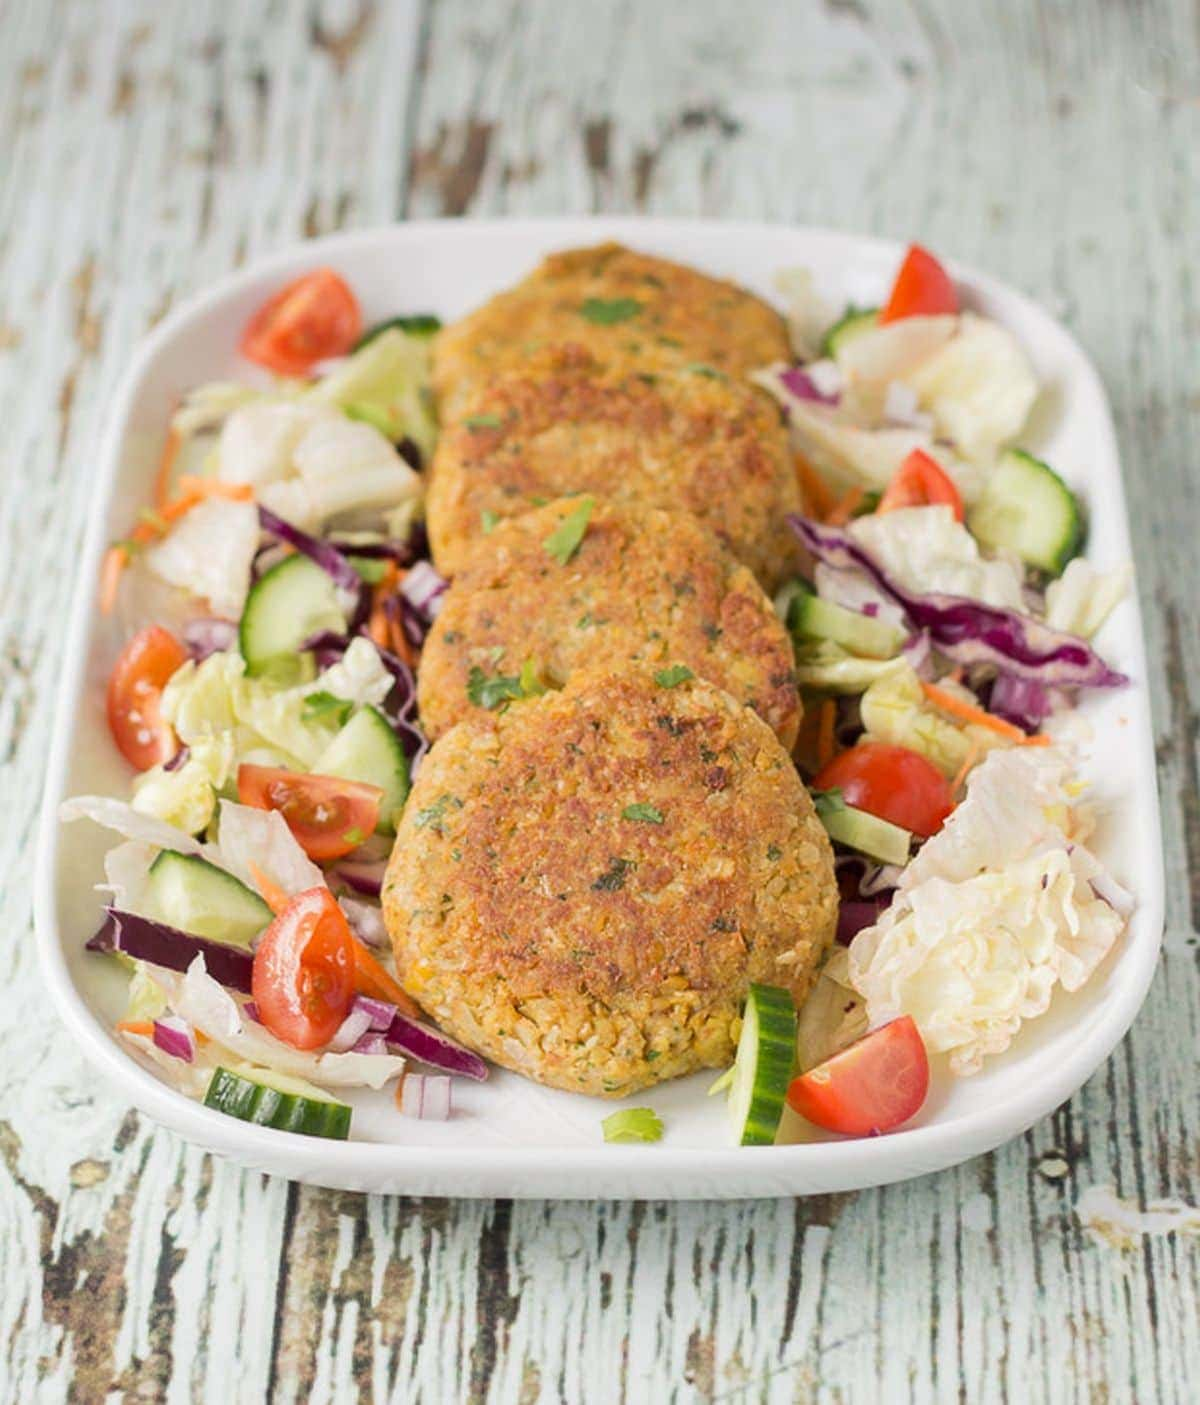 Four quick healthy chickpea cakes arranged on a platter dish surrounded by a salad of lettuce, cucumber and sliced tomatoes.